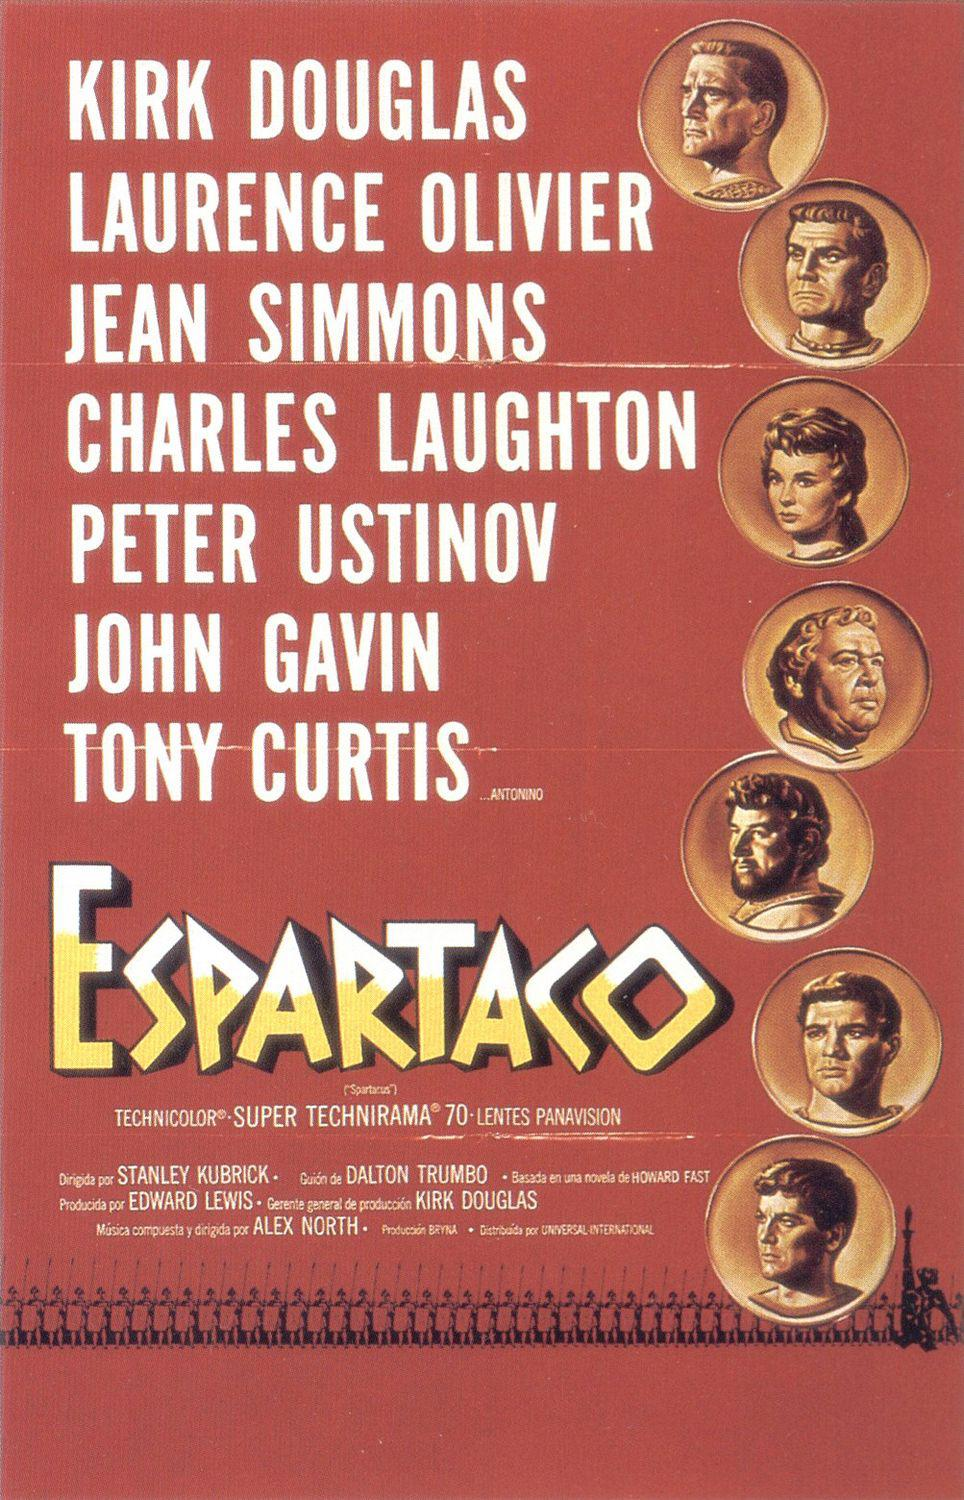 Spartacus - Espartaco - old classic cult film poster - Kirk Douglas - Lawrence Oliver - Jean Simmons - Charles Laughton - Peter Usinov - Ken Gavin - Tony Curtis - a Stanley Kubrick film